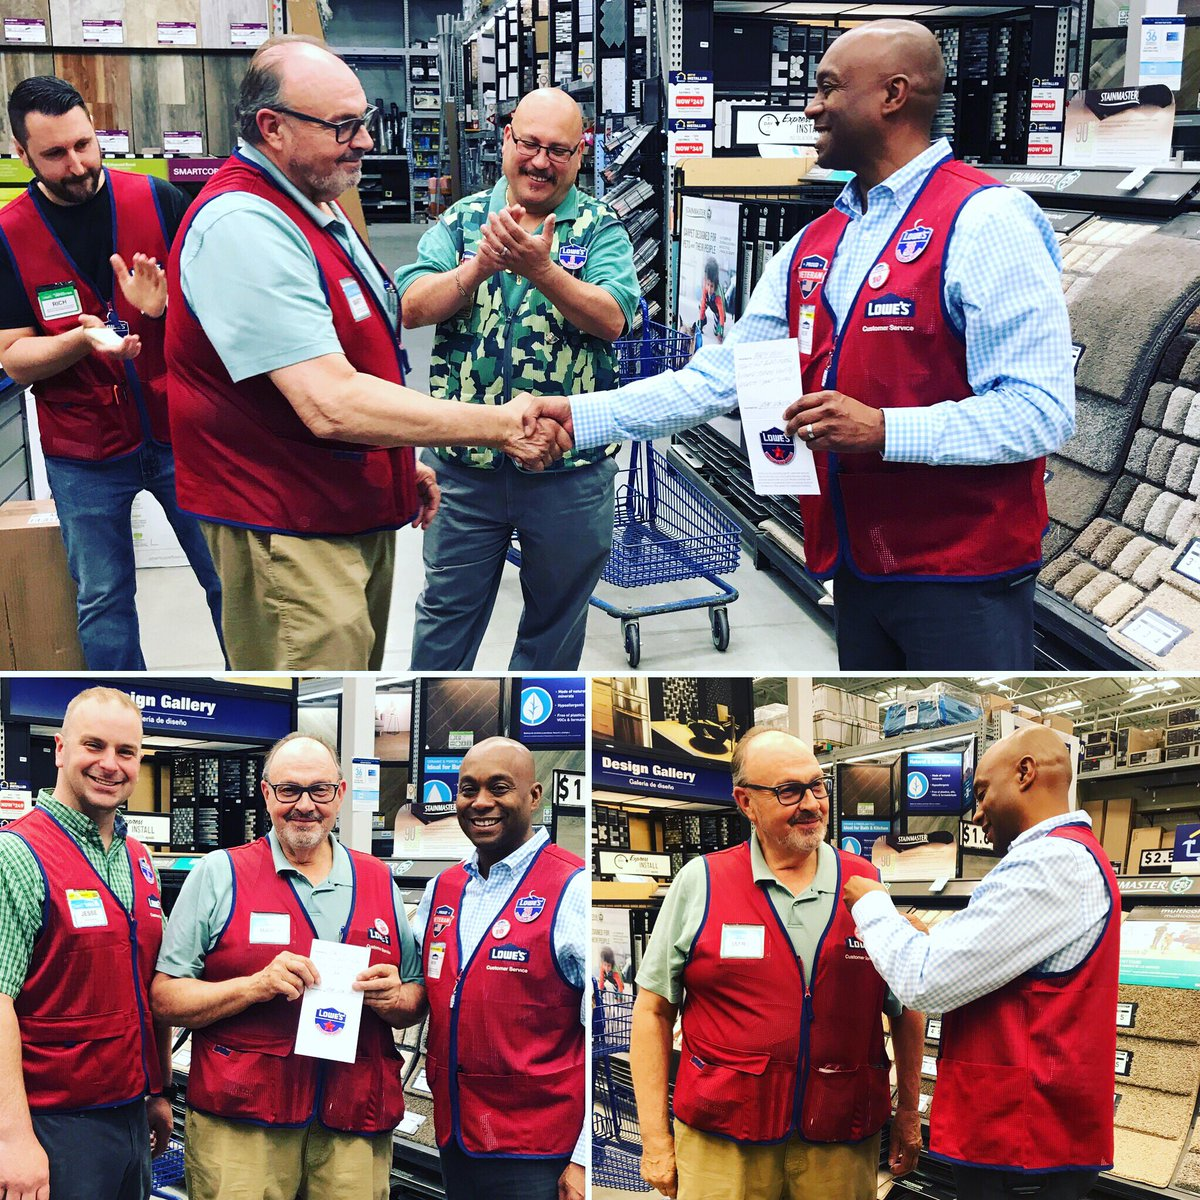 Lowesmanchesternj Lowes2428 Twitter